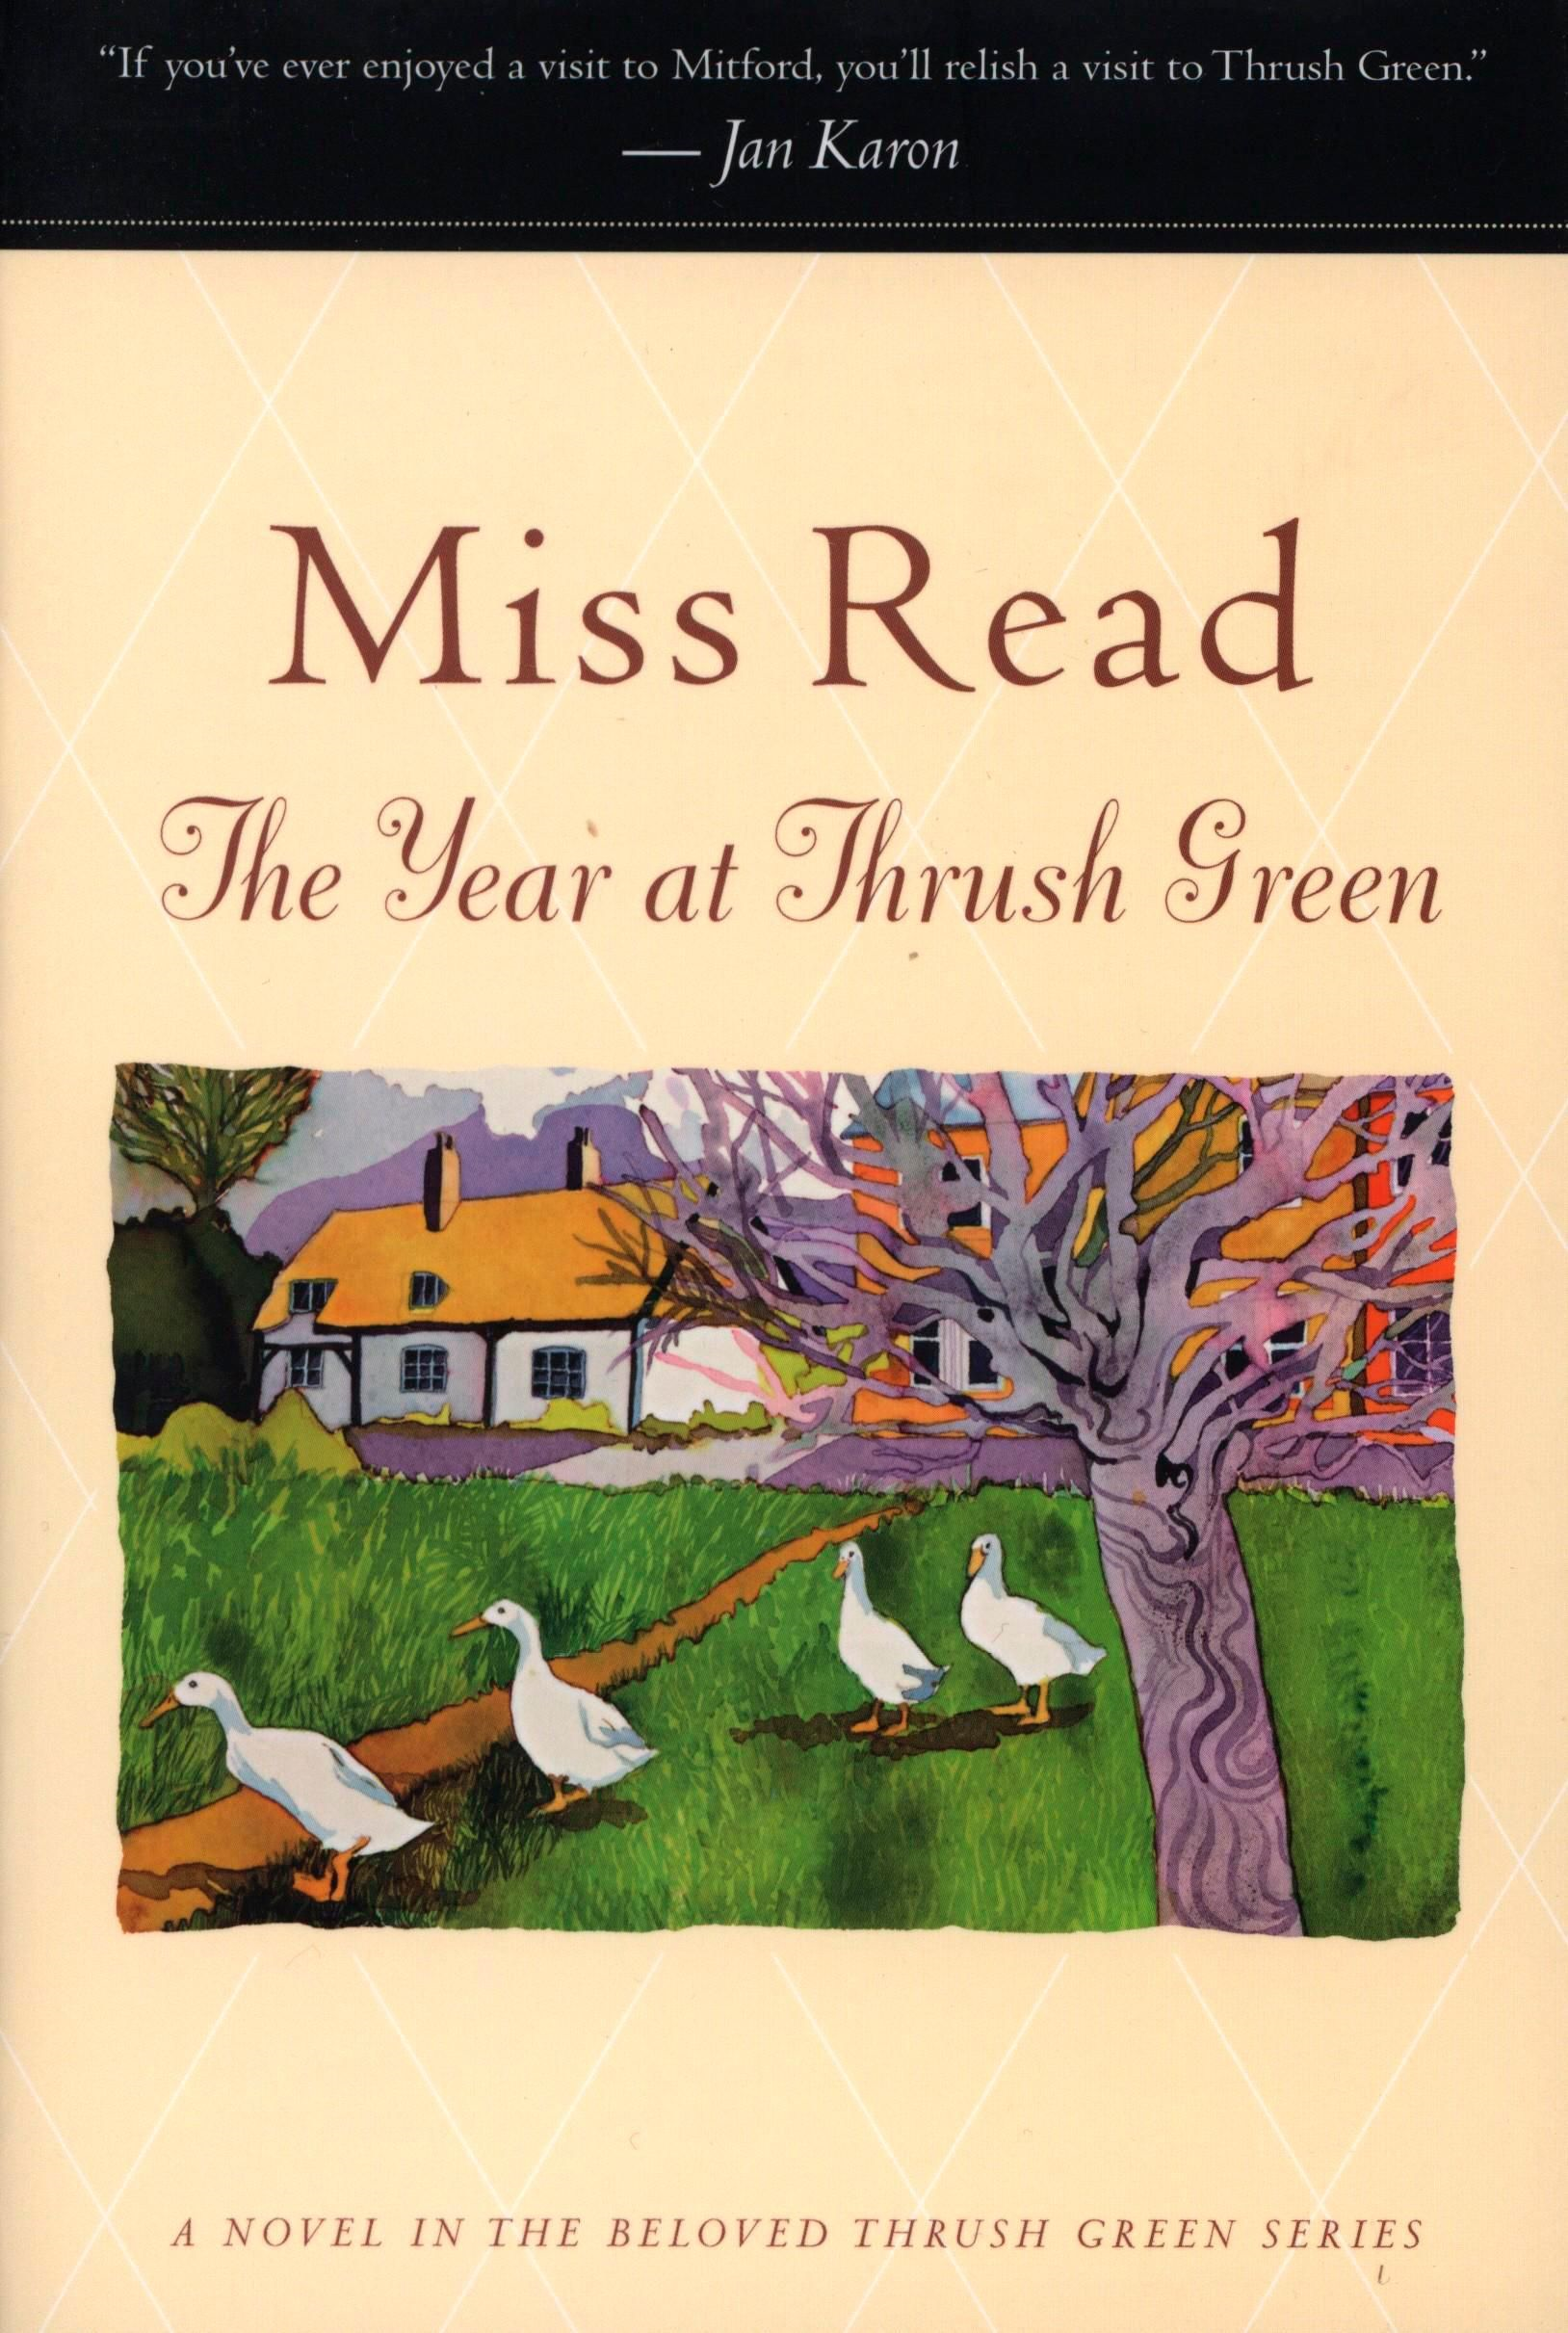 The Year at Thrush Green By: Miss Read